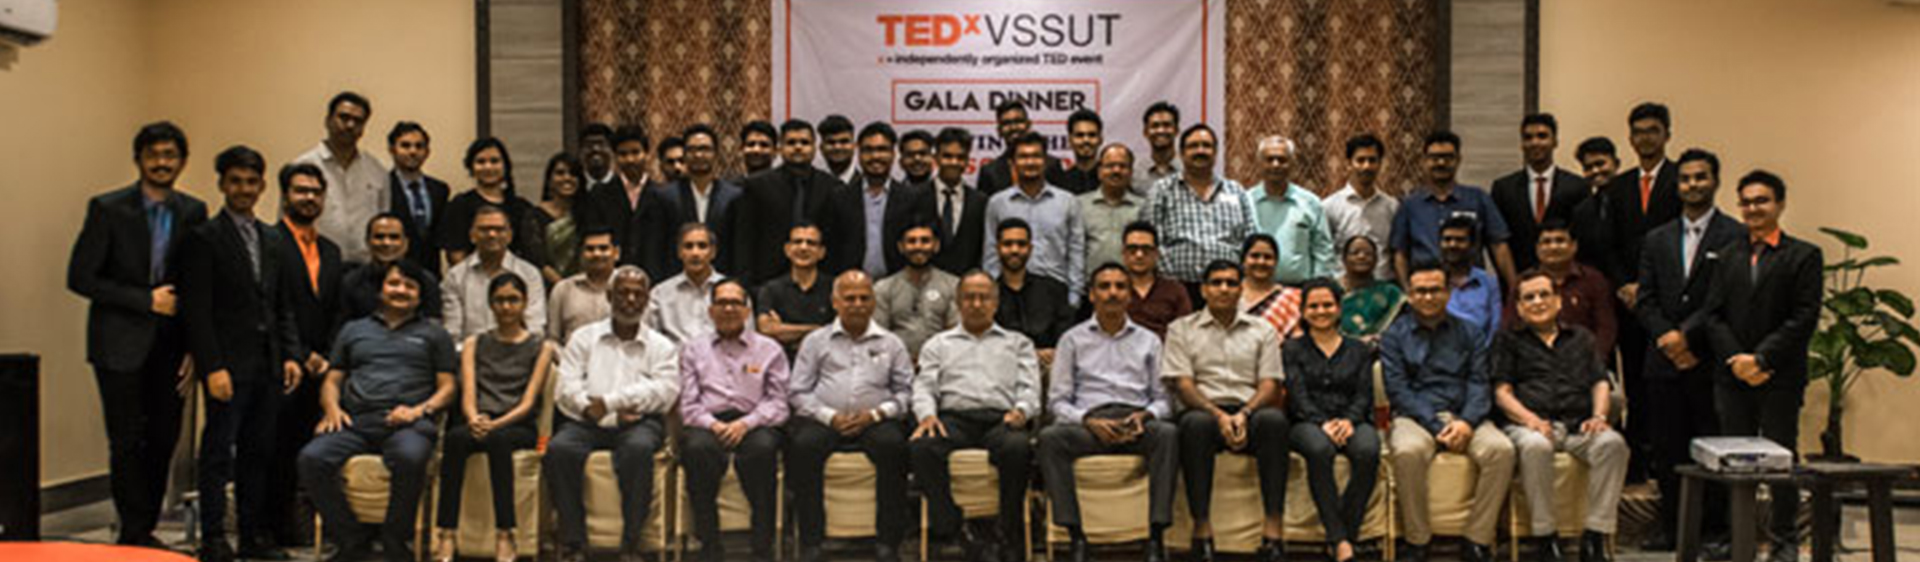 Organization of TED Conference - TEDxVSSUT on 30th September 2018